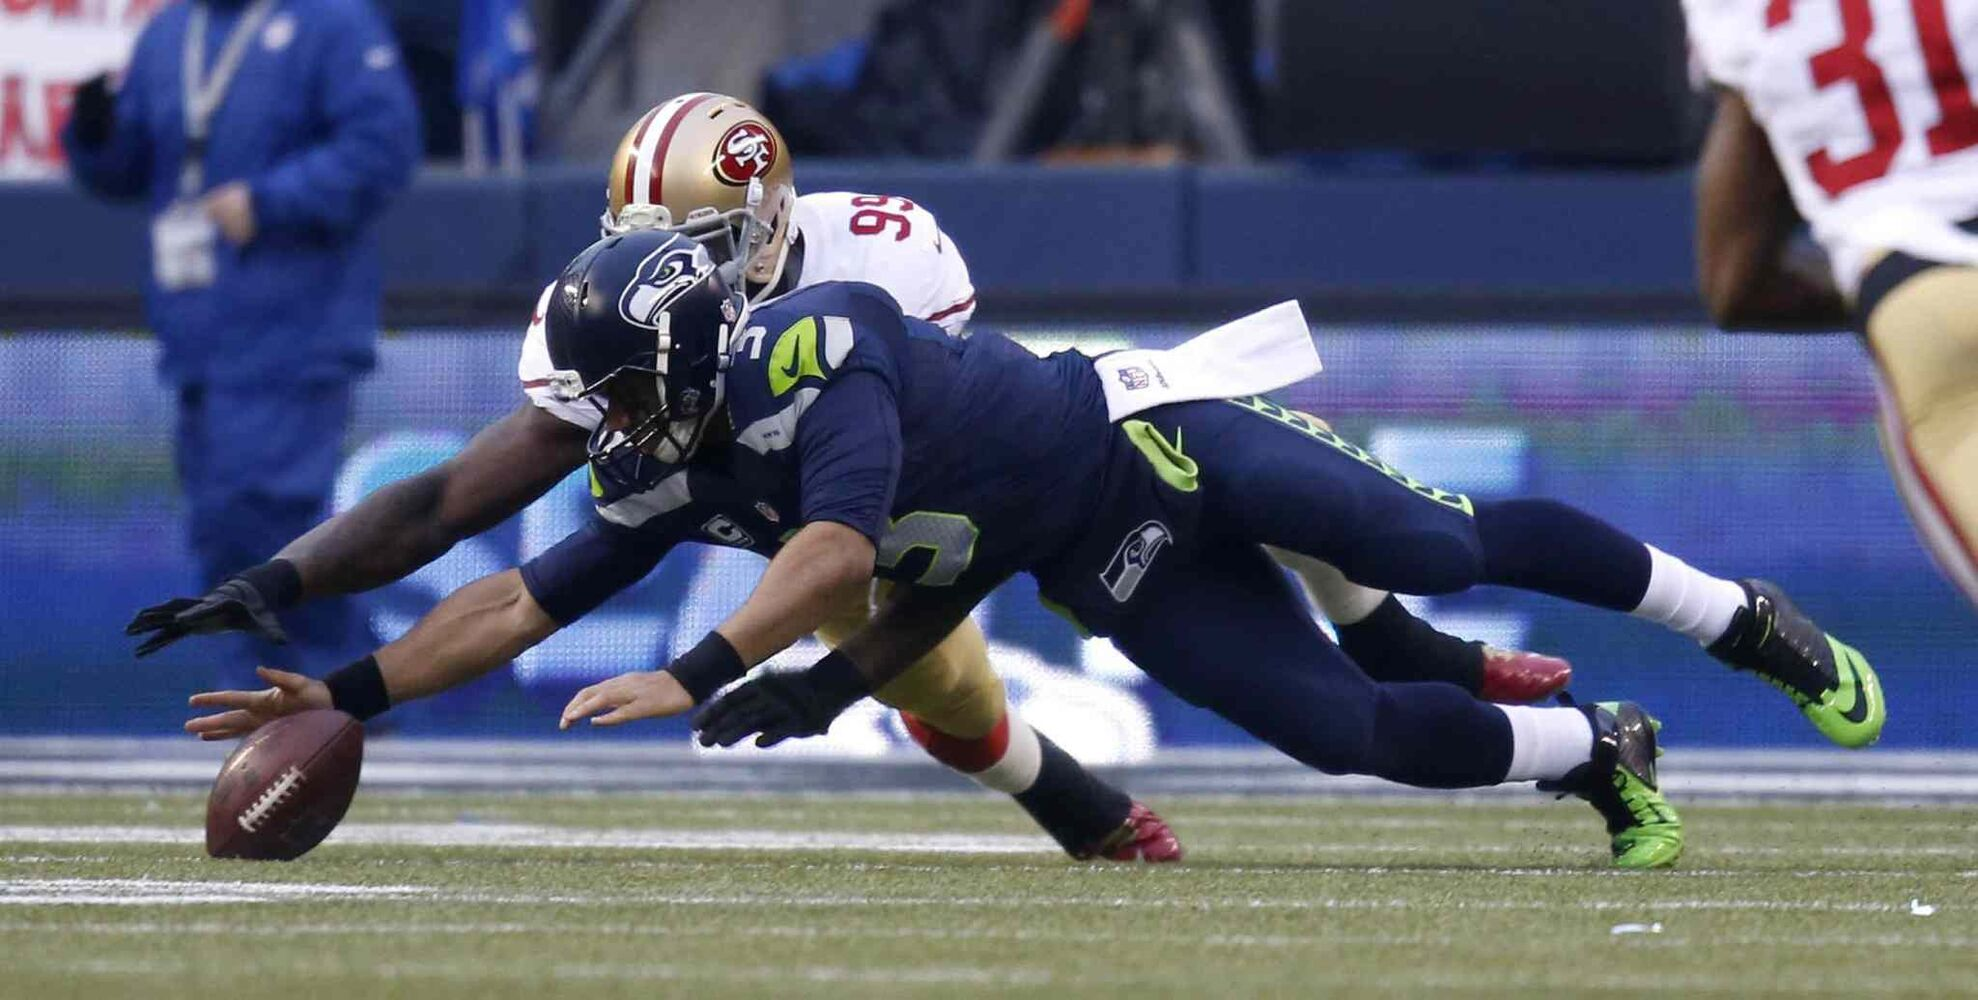 Seahawks QB Russell Wilson fumbles the ball. (Nhat V. Meyer / Tribune Media MCT)